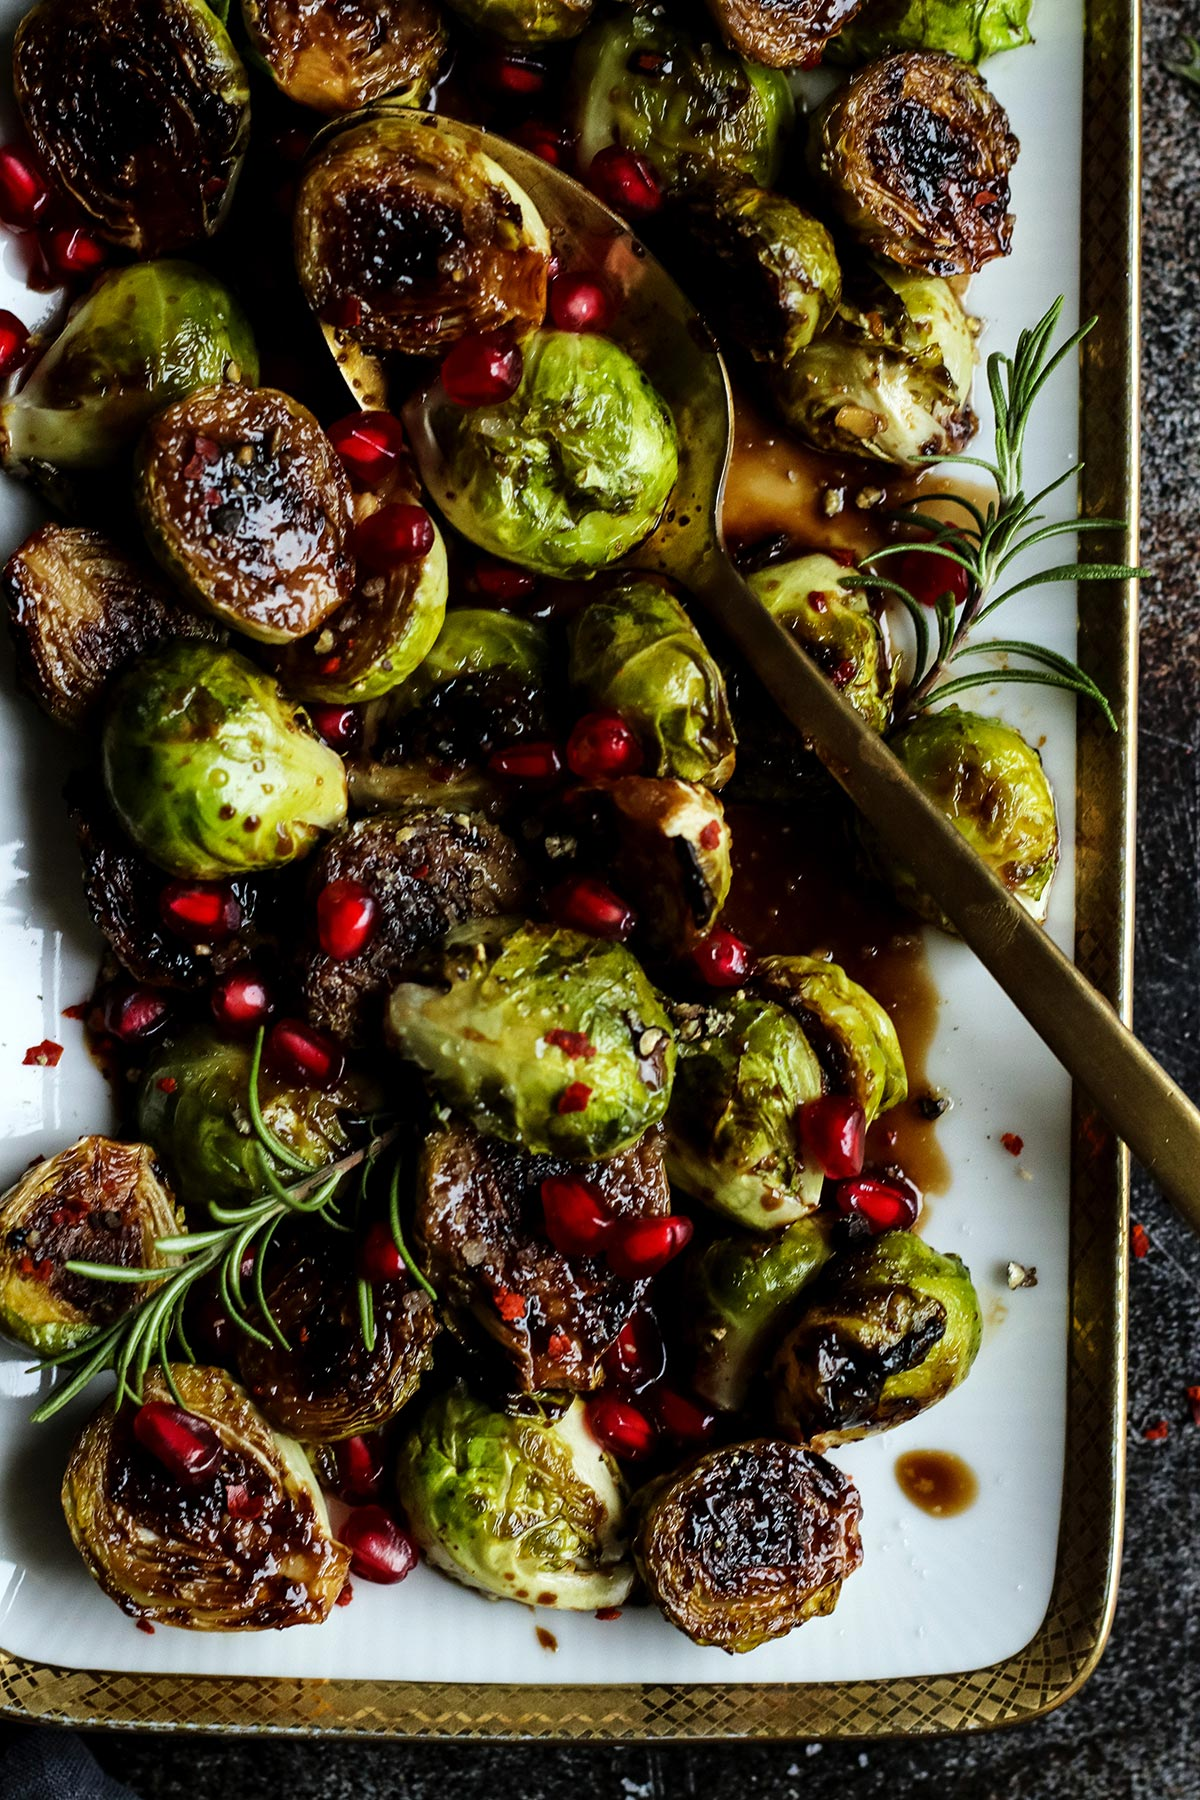 Closeup of a Vegan Holiday Brussels Sprouts Side Dish.